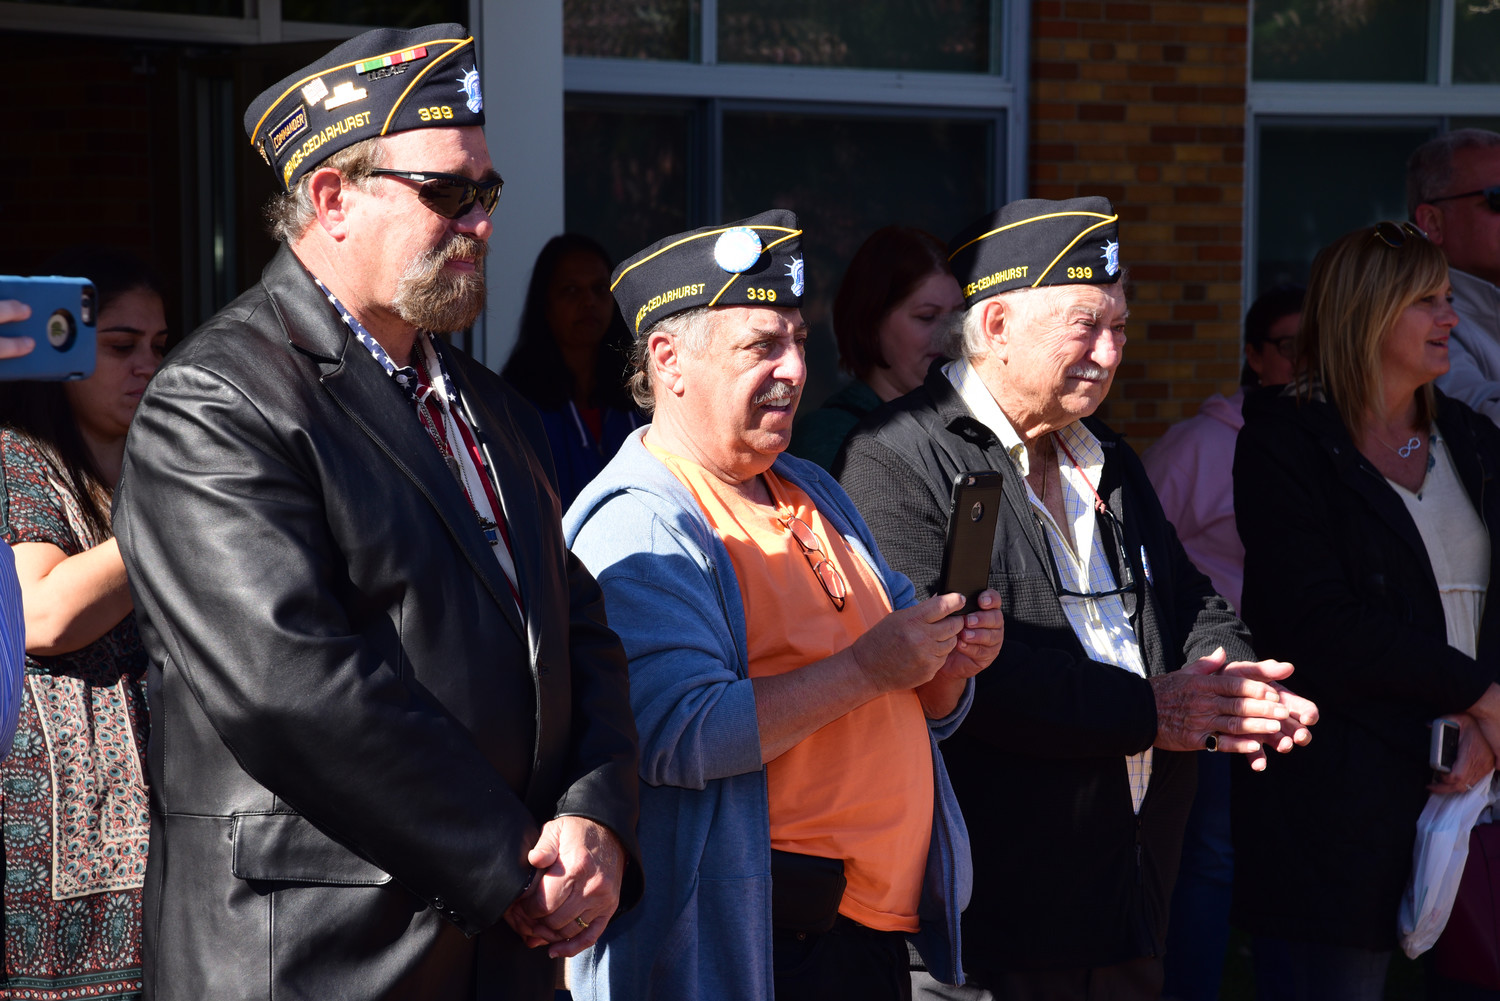 At Ogden Elementary School's Make A Difference Day with Paws For War, Lawrence Cedarhurst American Legion Post 339 Commander Syd Mandelbaum, left, and Legion members Mitchell Dancyger and Domenick Crici.